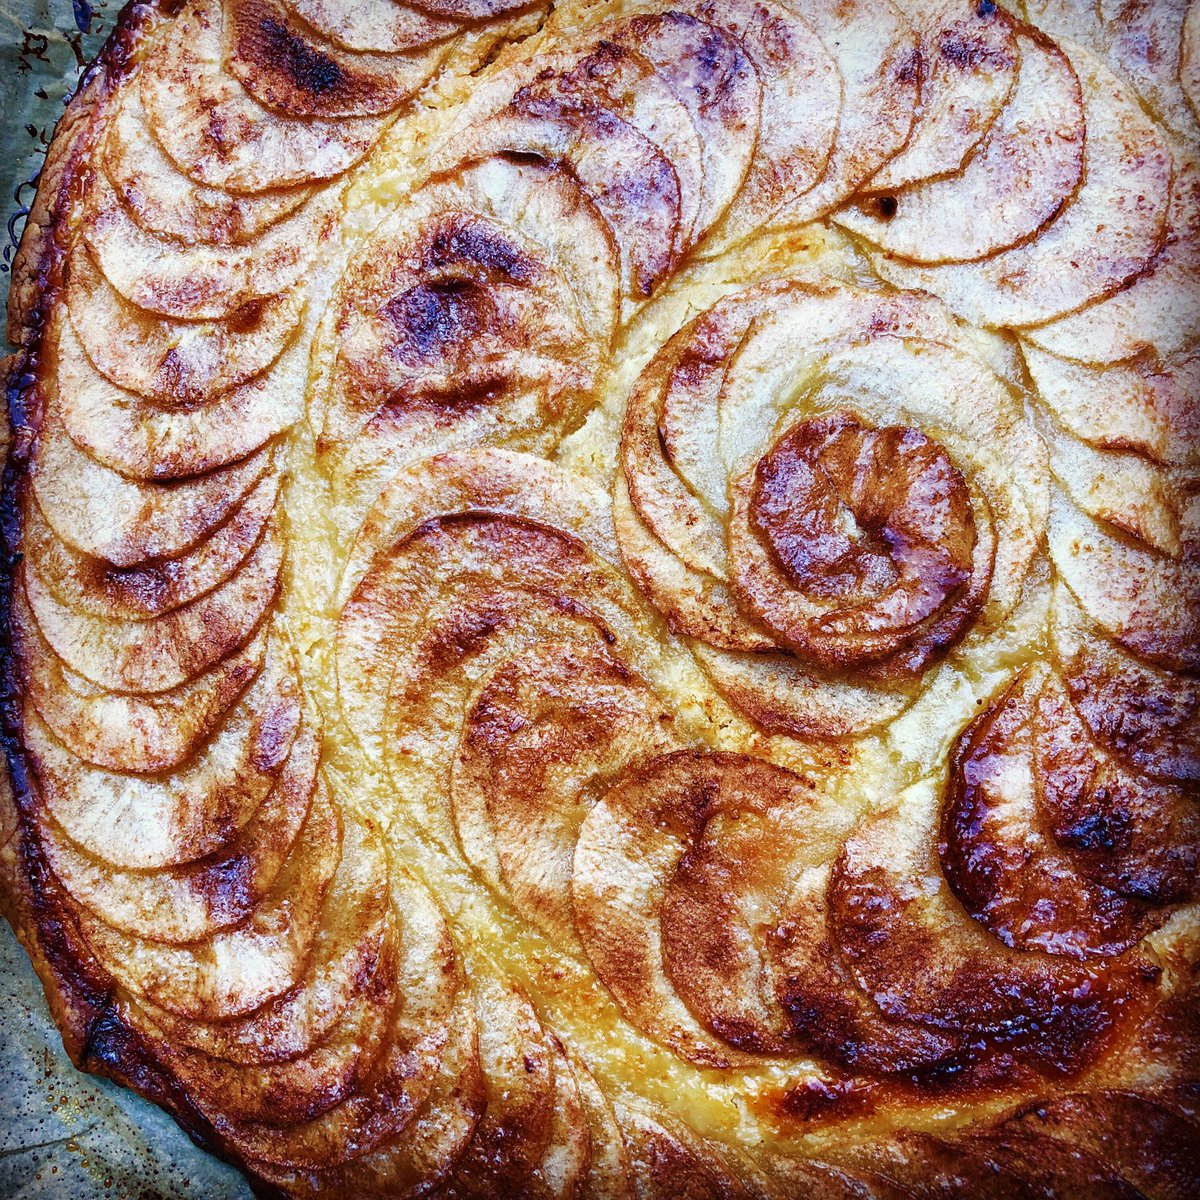 Pudding after roast lamb tonight. I know it's summer. My body wants autumn. Huge tarte fine aux pommes <br>http://pic.twitter.com/b70Hknjhky